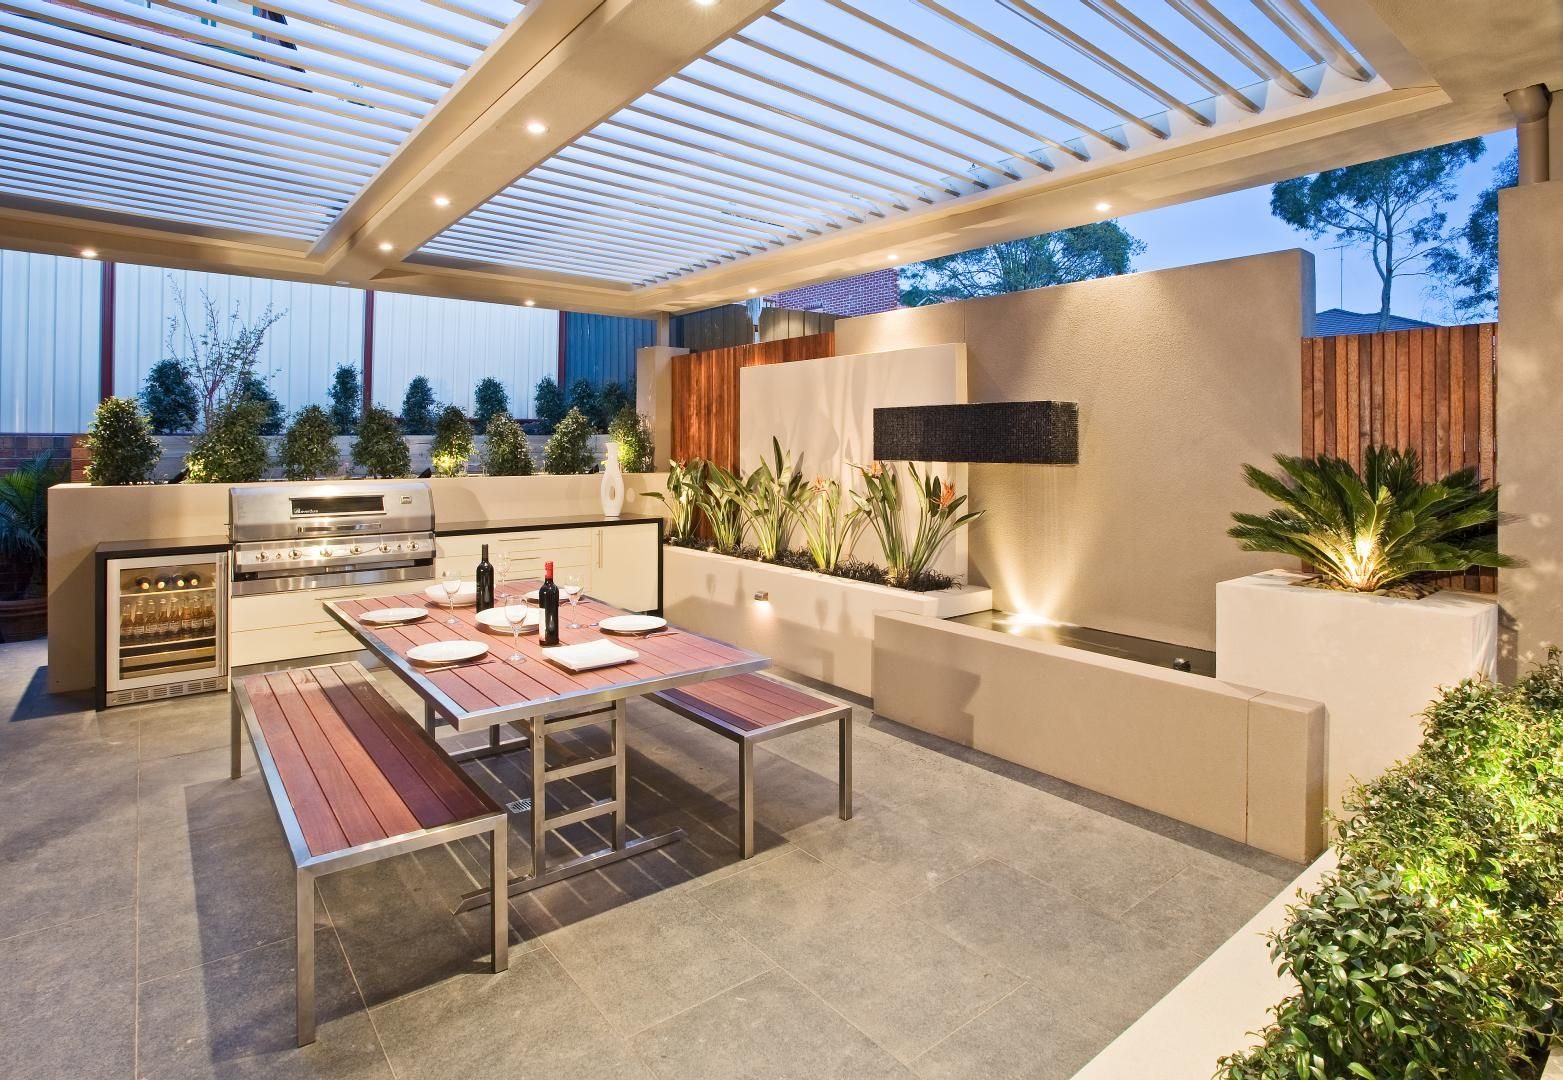 Outdoor entertaining area project by cos design for Small outdoor patio areas